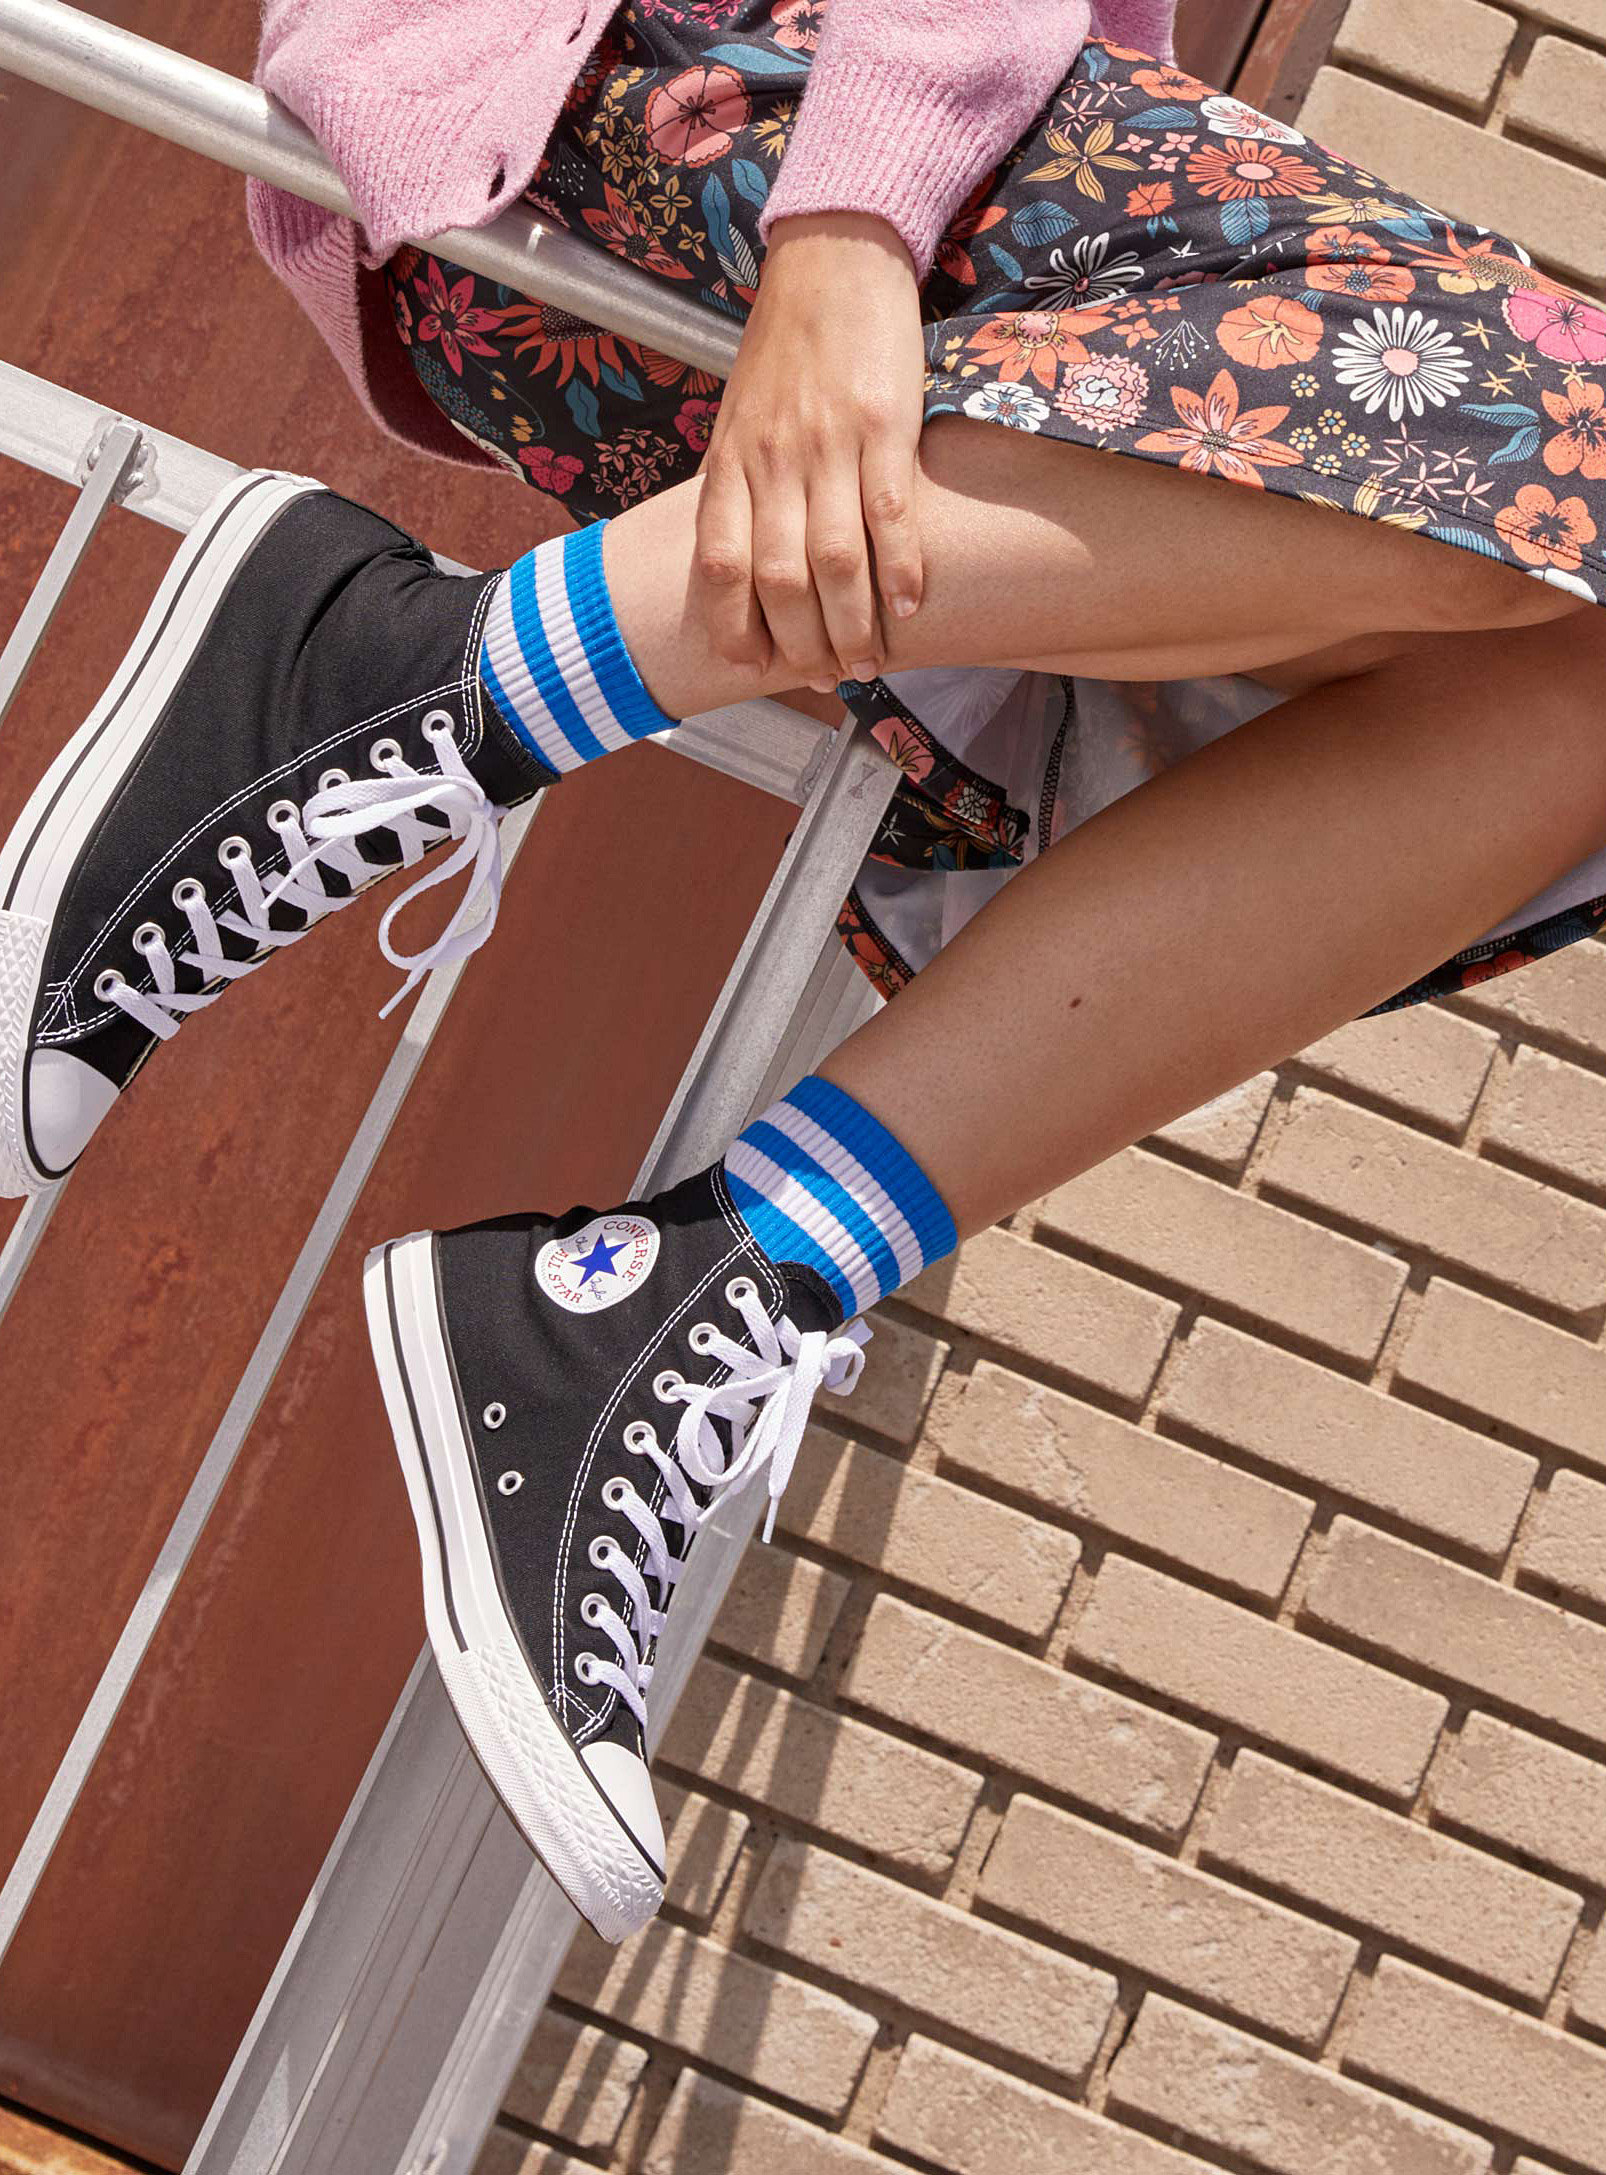 person wearing the converse shoes